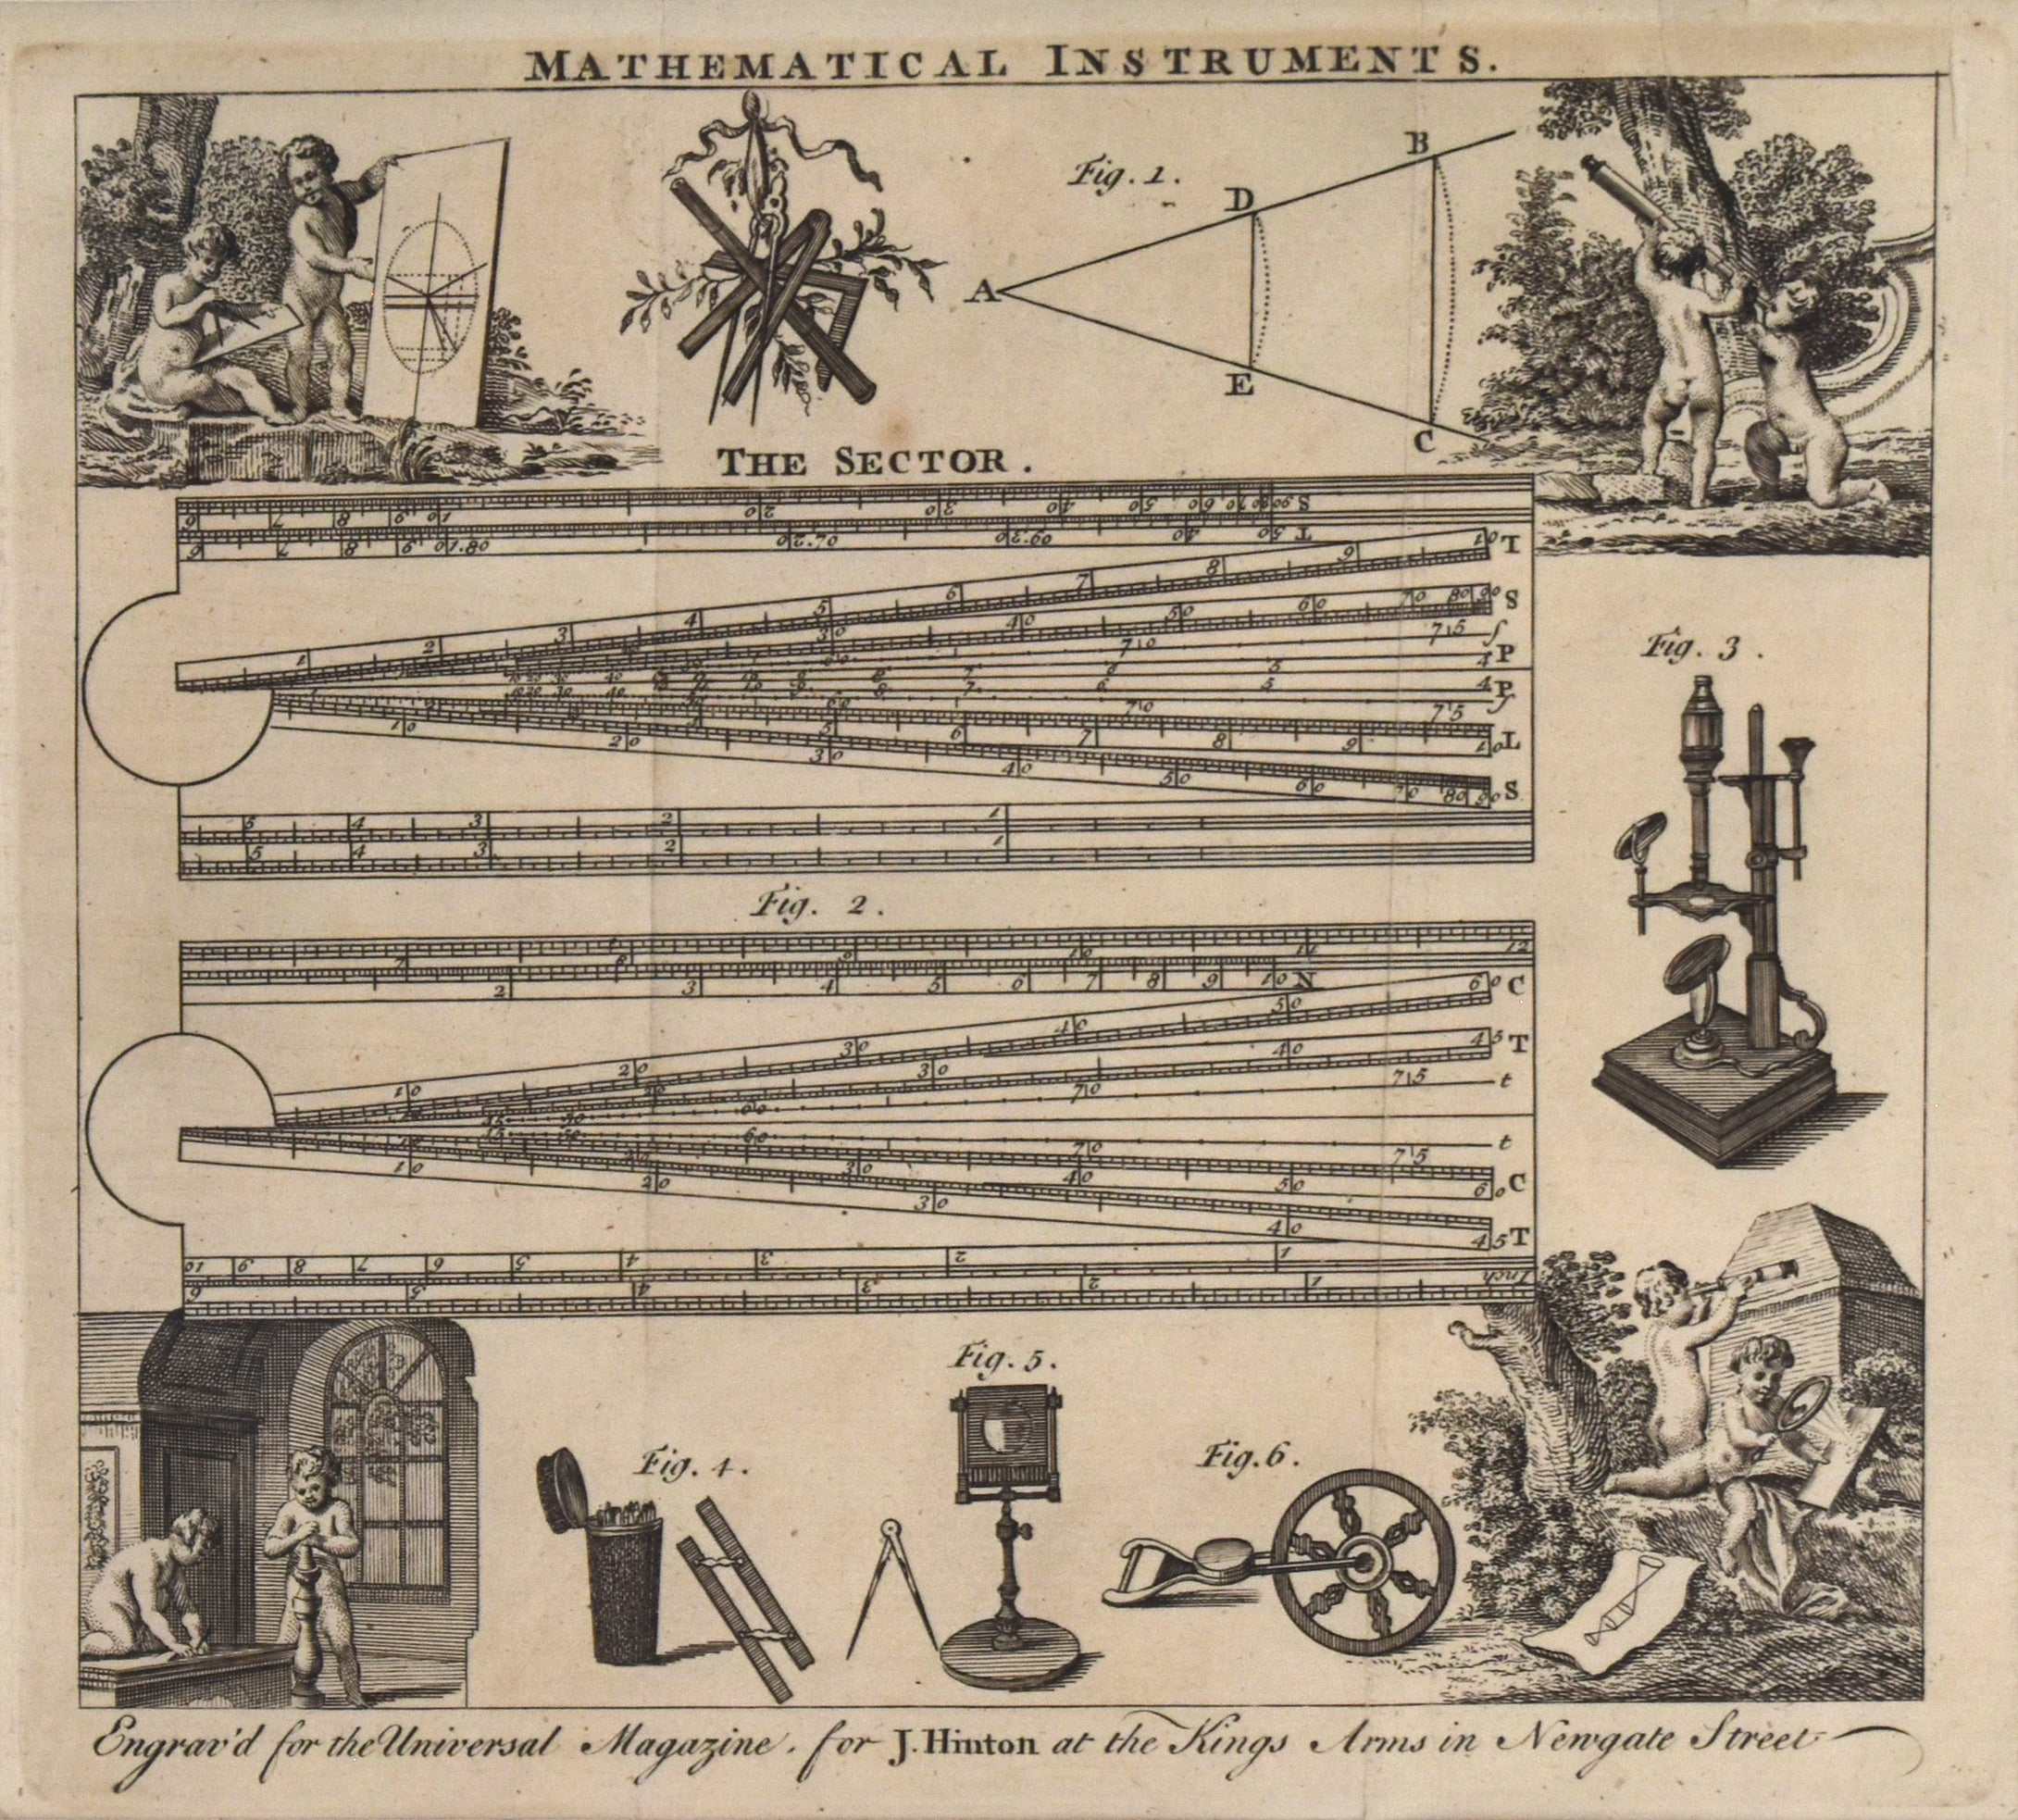 Mathematical Instruments: Universal Magazine c. 1760